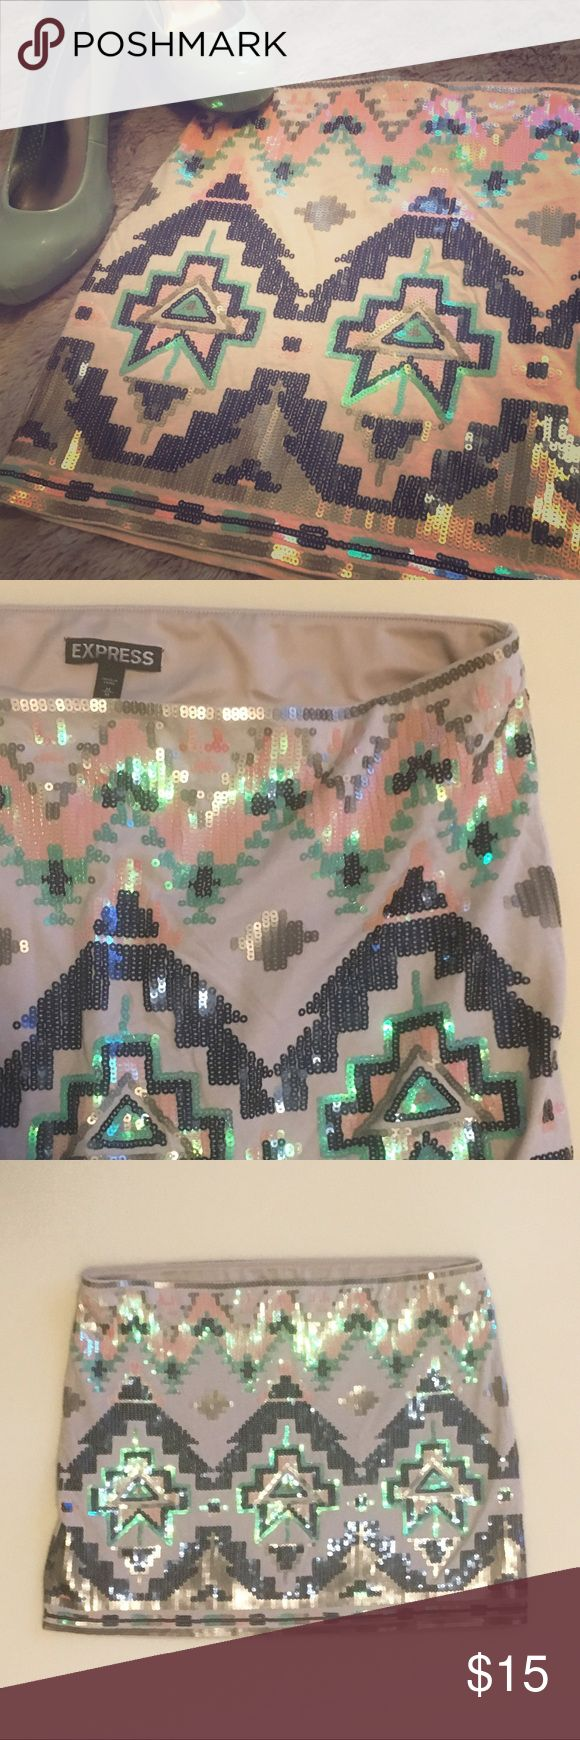 Express Geometric/ Tribal Print Sequin Mini Skirt Stretchy tan skirt with front and back sequined pattern. Worn twice, no missing sequins! Express Skirts Mini